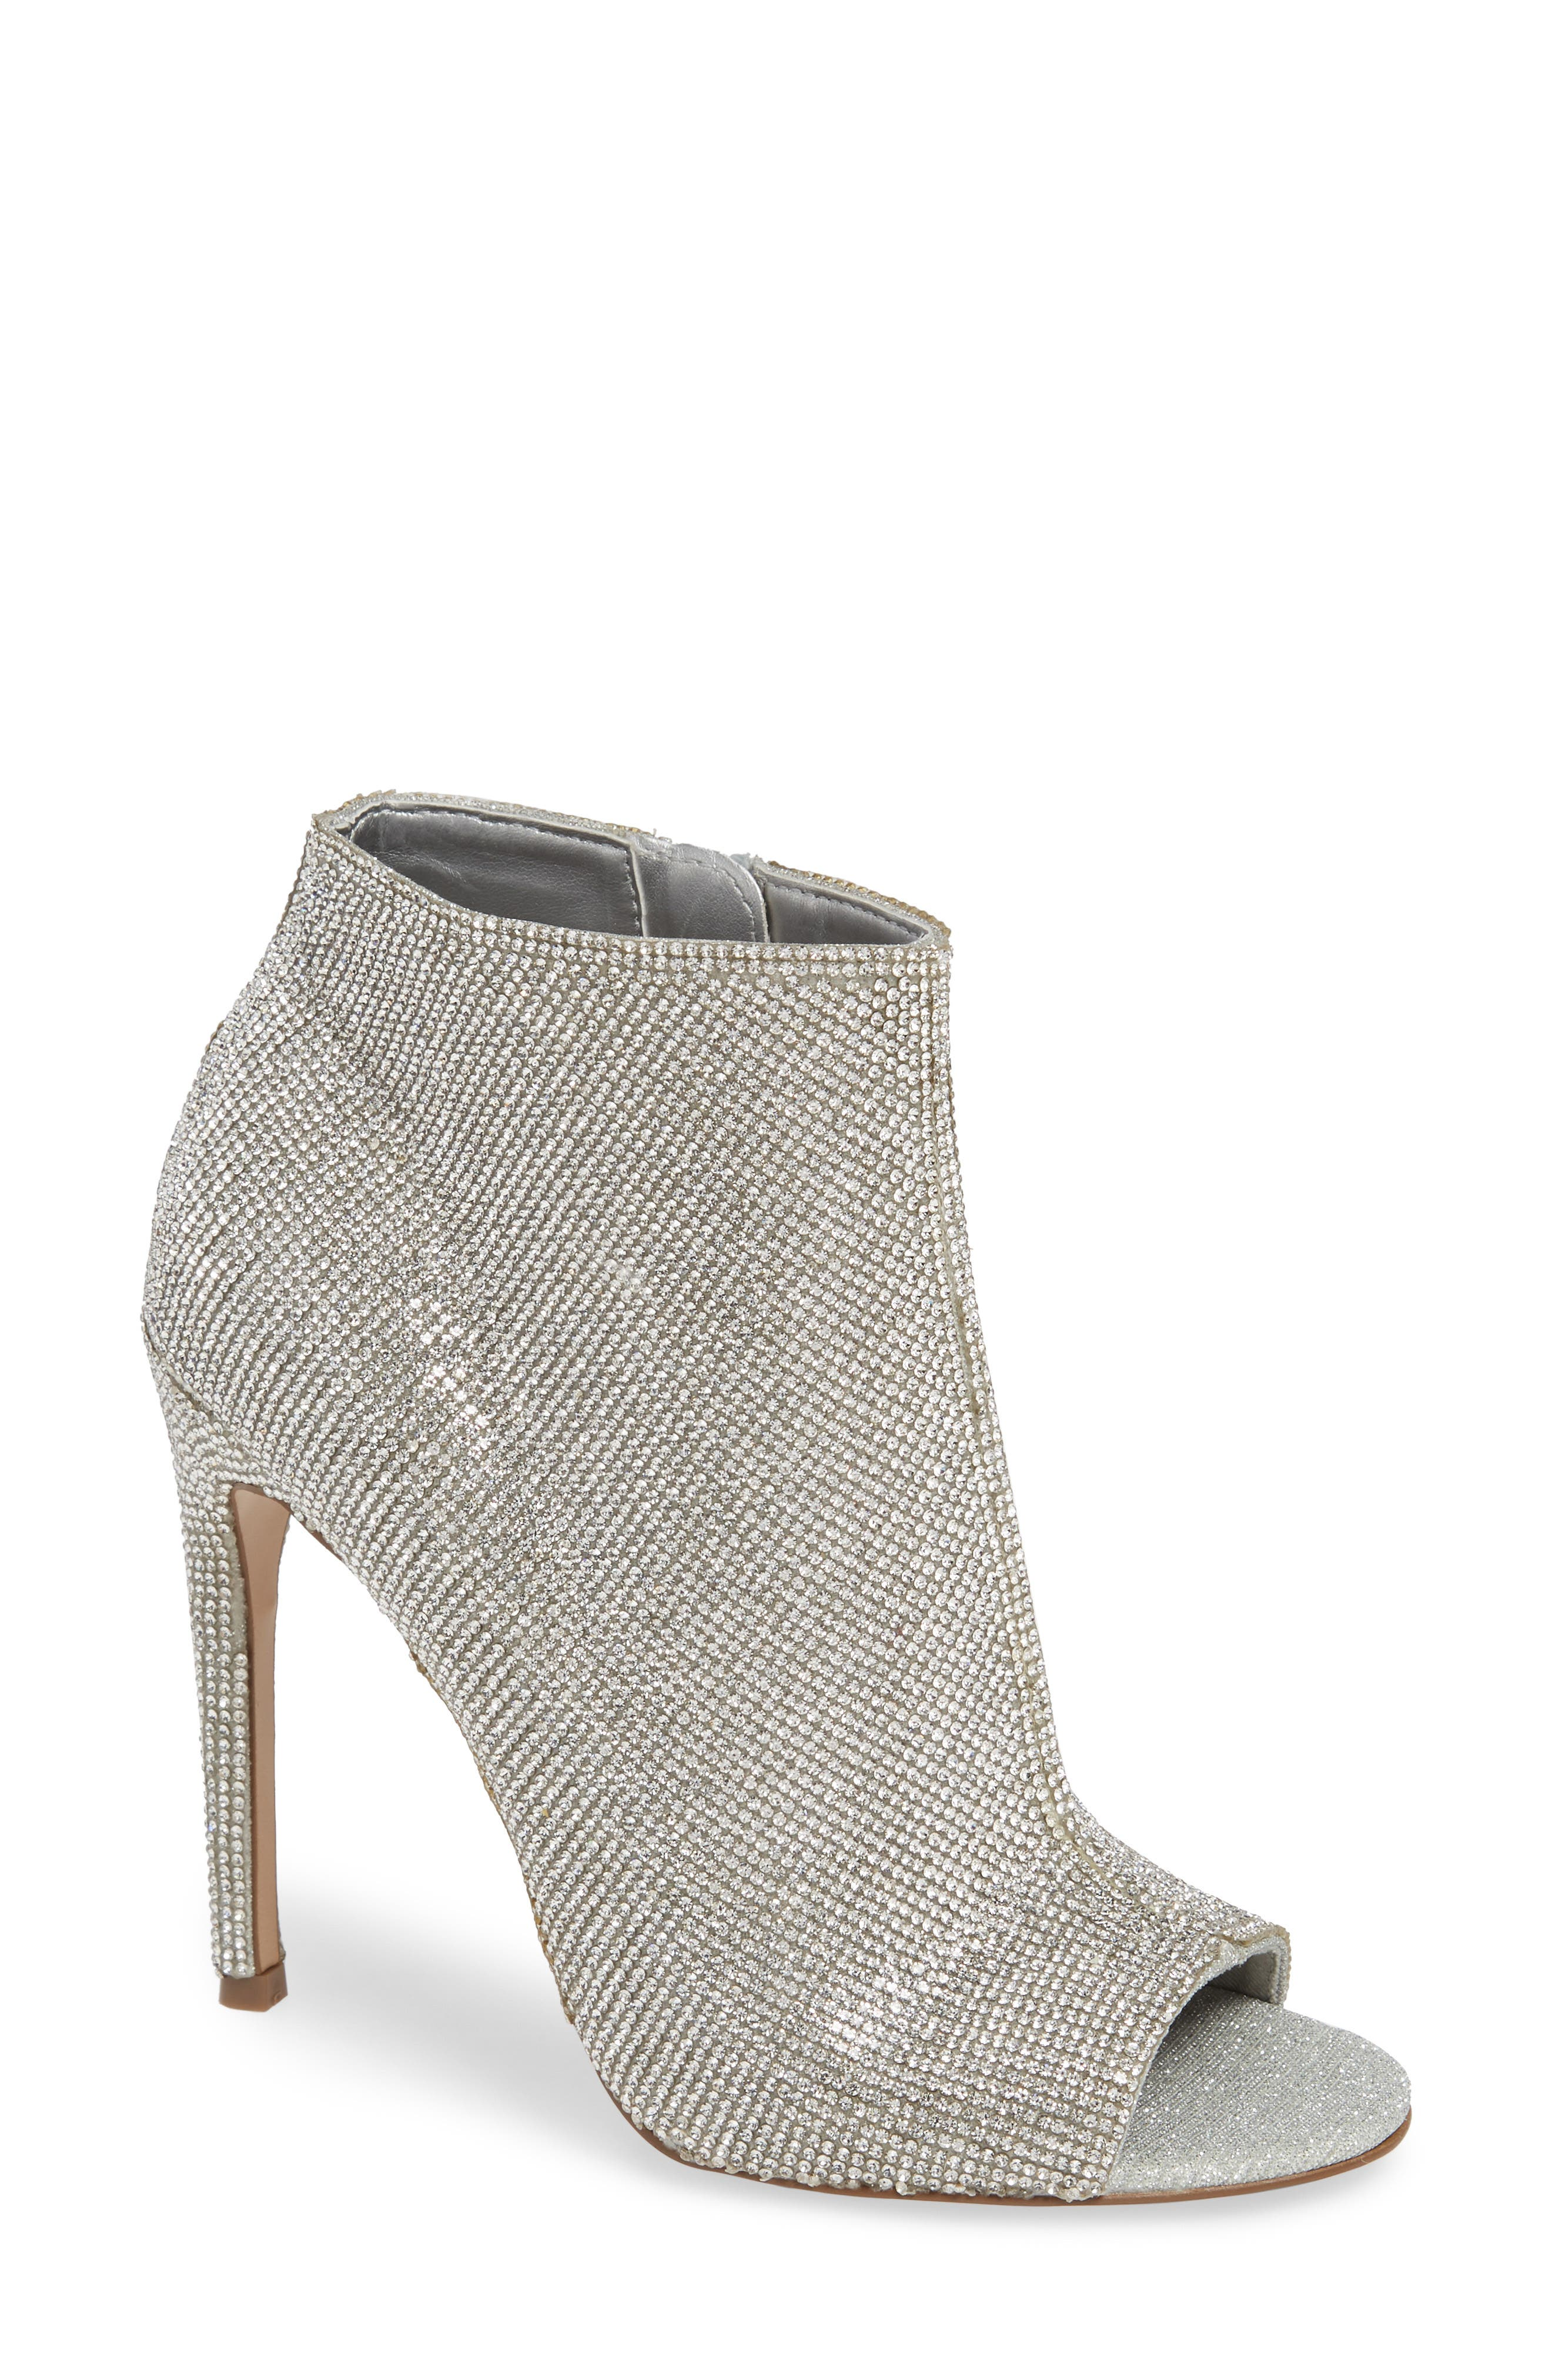 Kicking Embellished Bootie,                             Main thumbnail 1, color,                             040